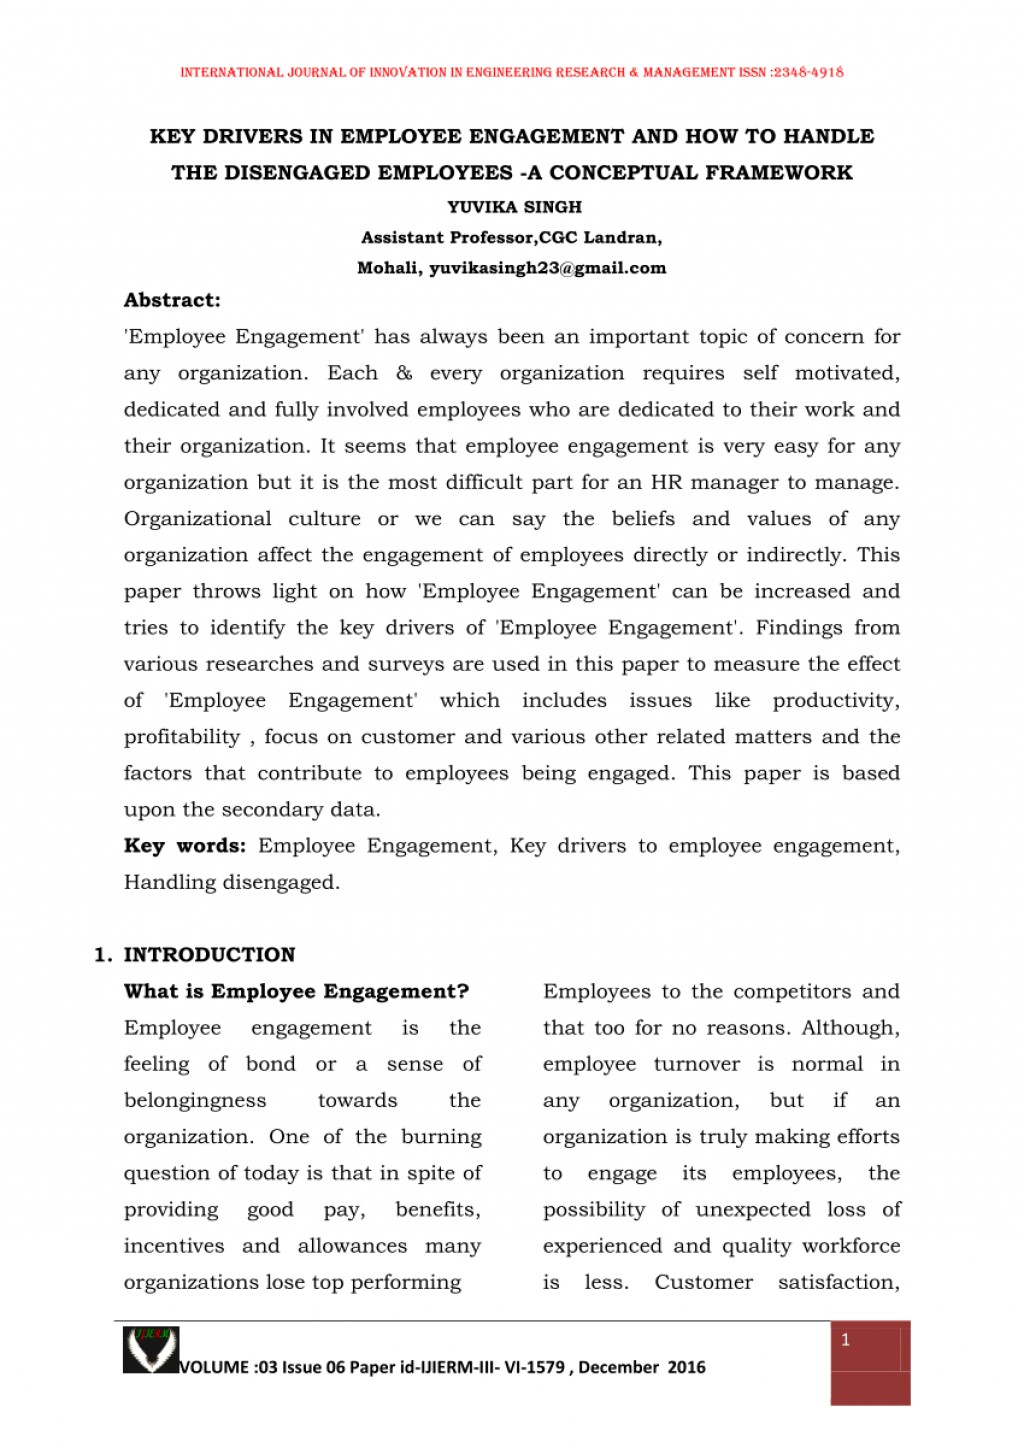 009 Research Paper Best Websites For Engineering Papers Cheating Essay Wondrous Large